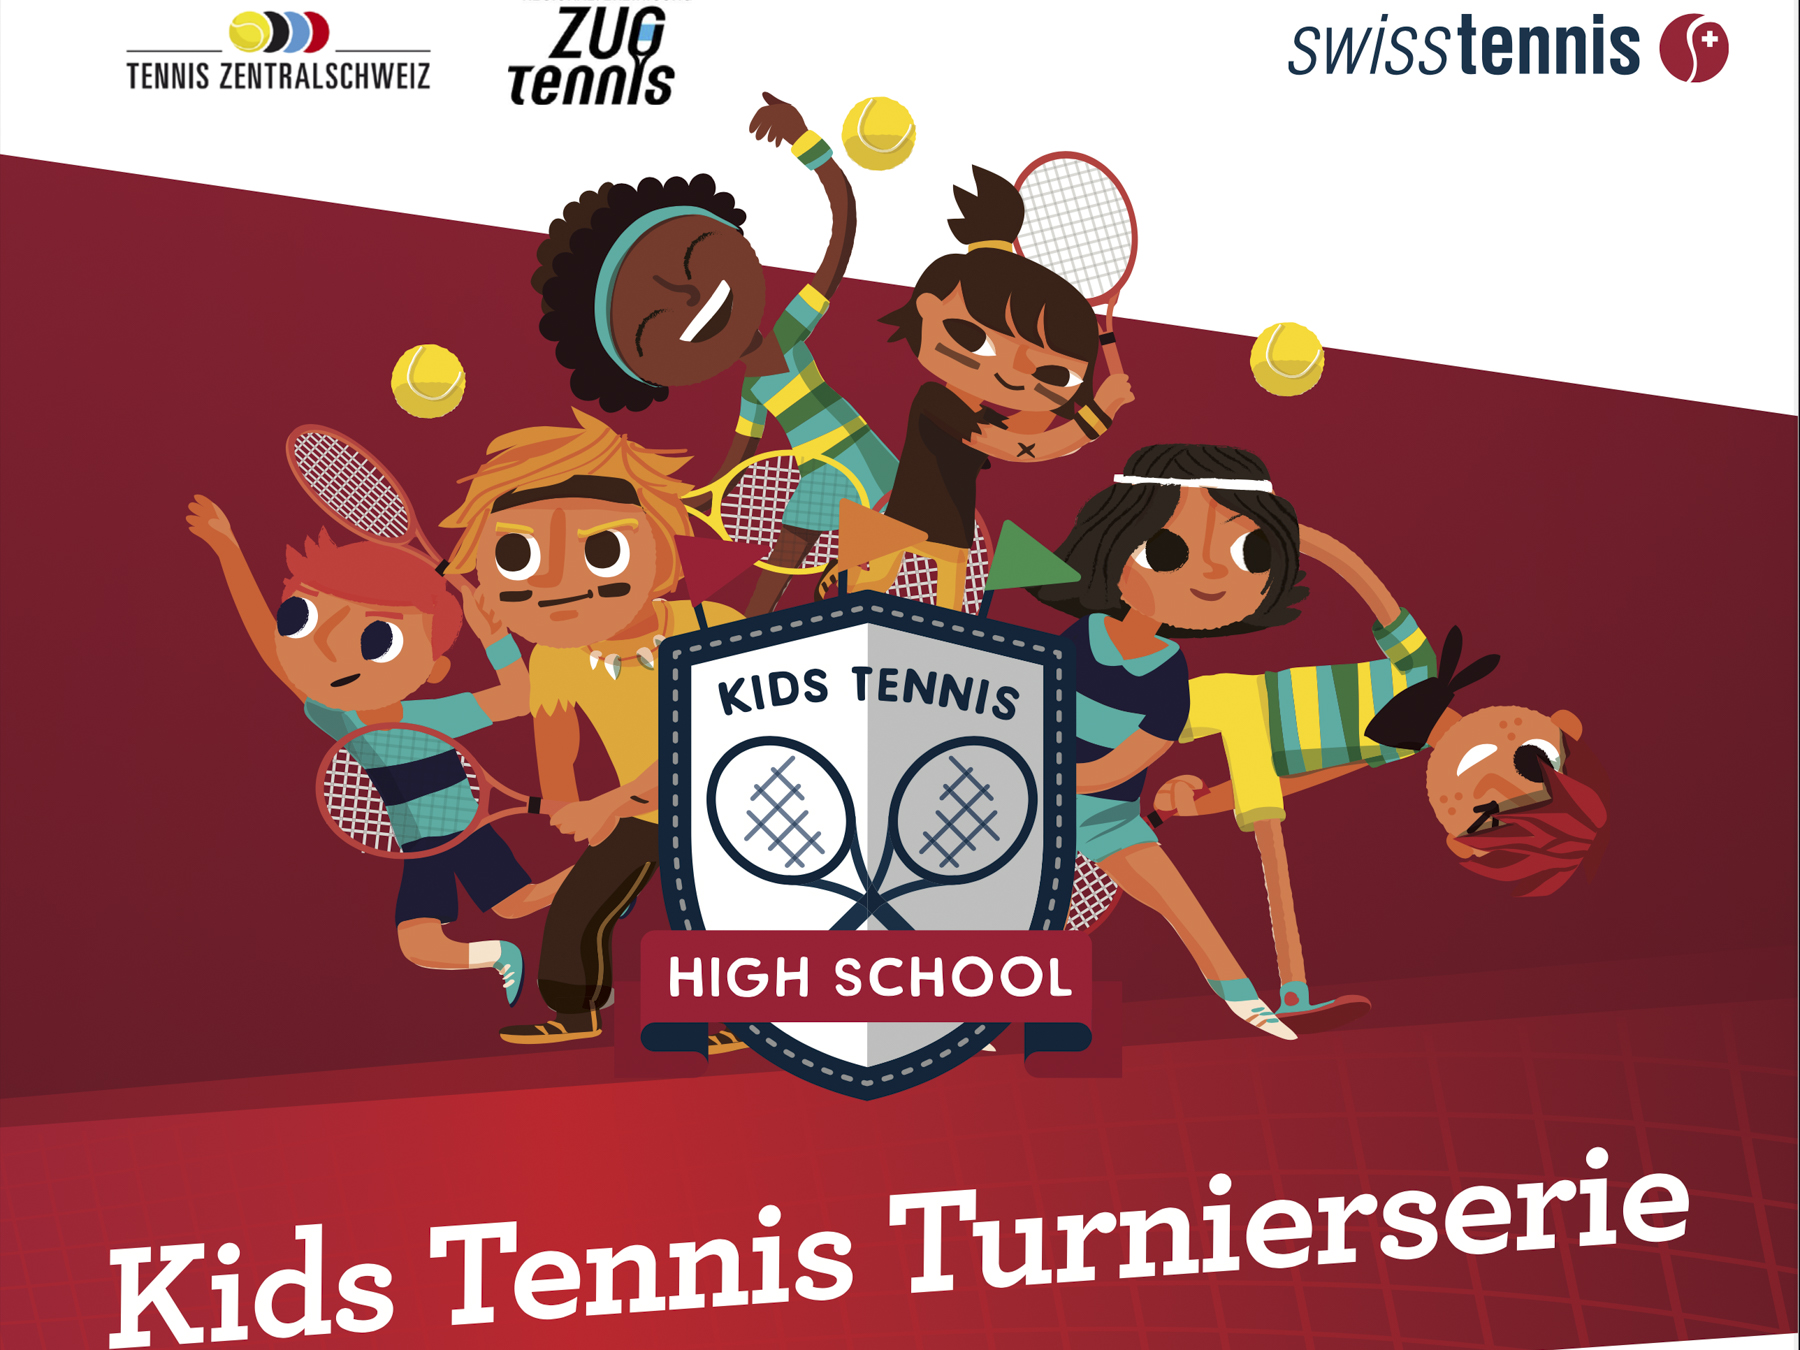 Kids Tennis Turnierserie